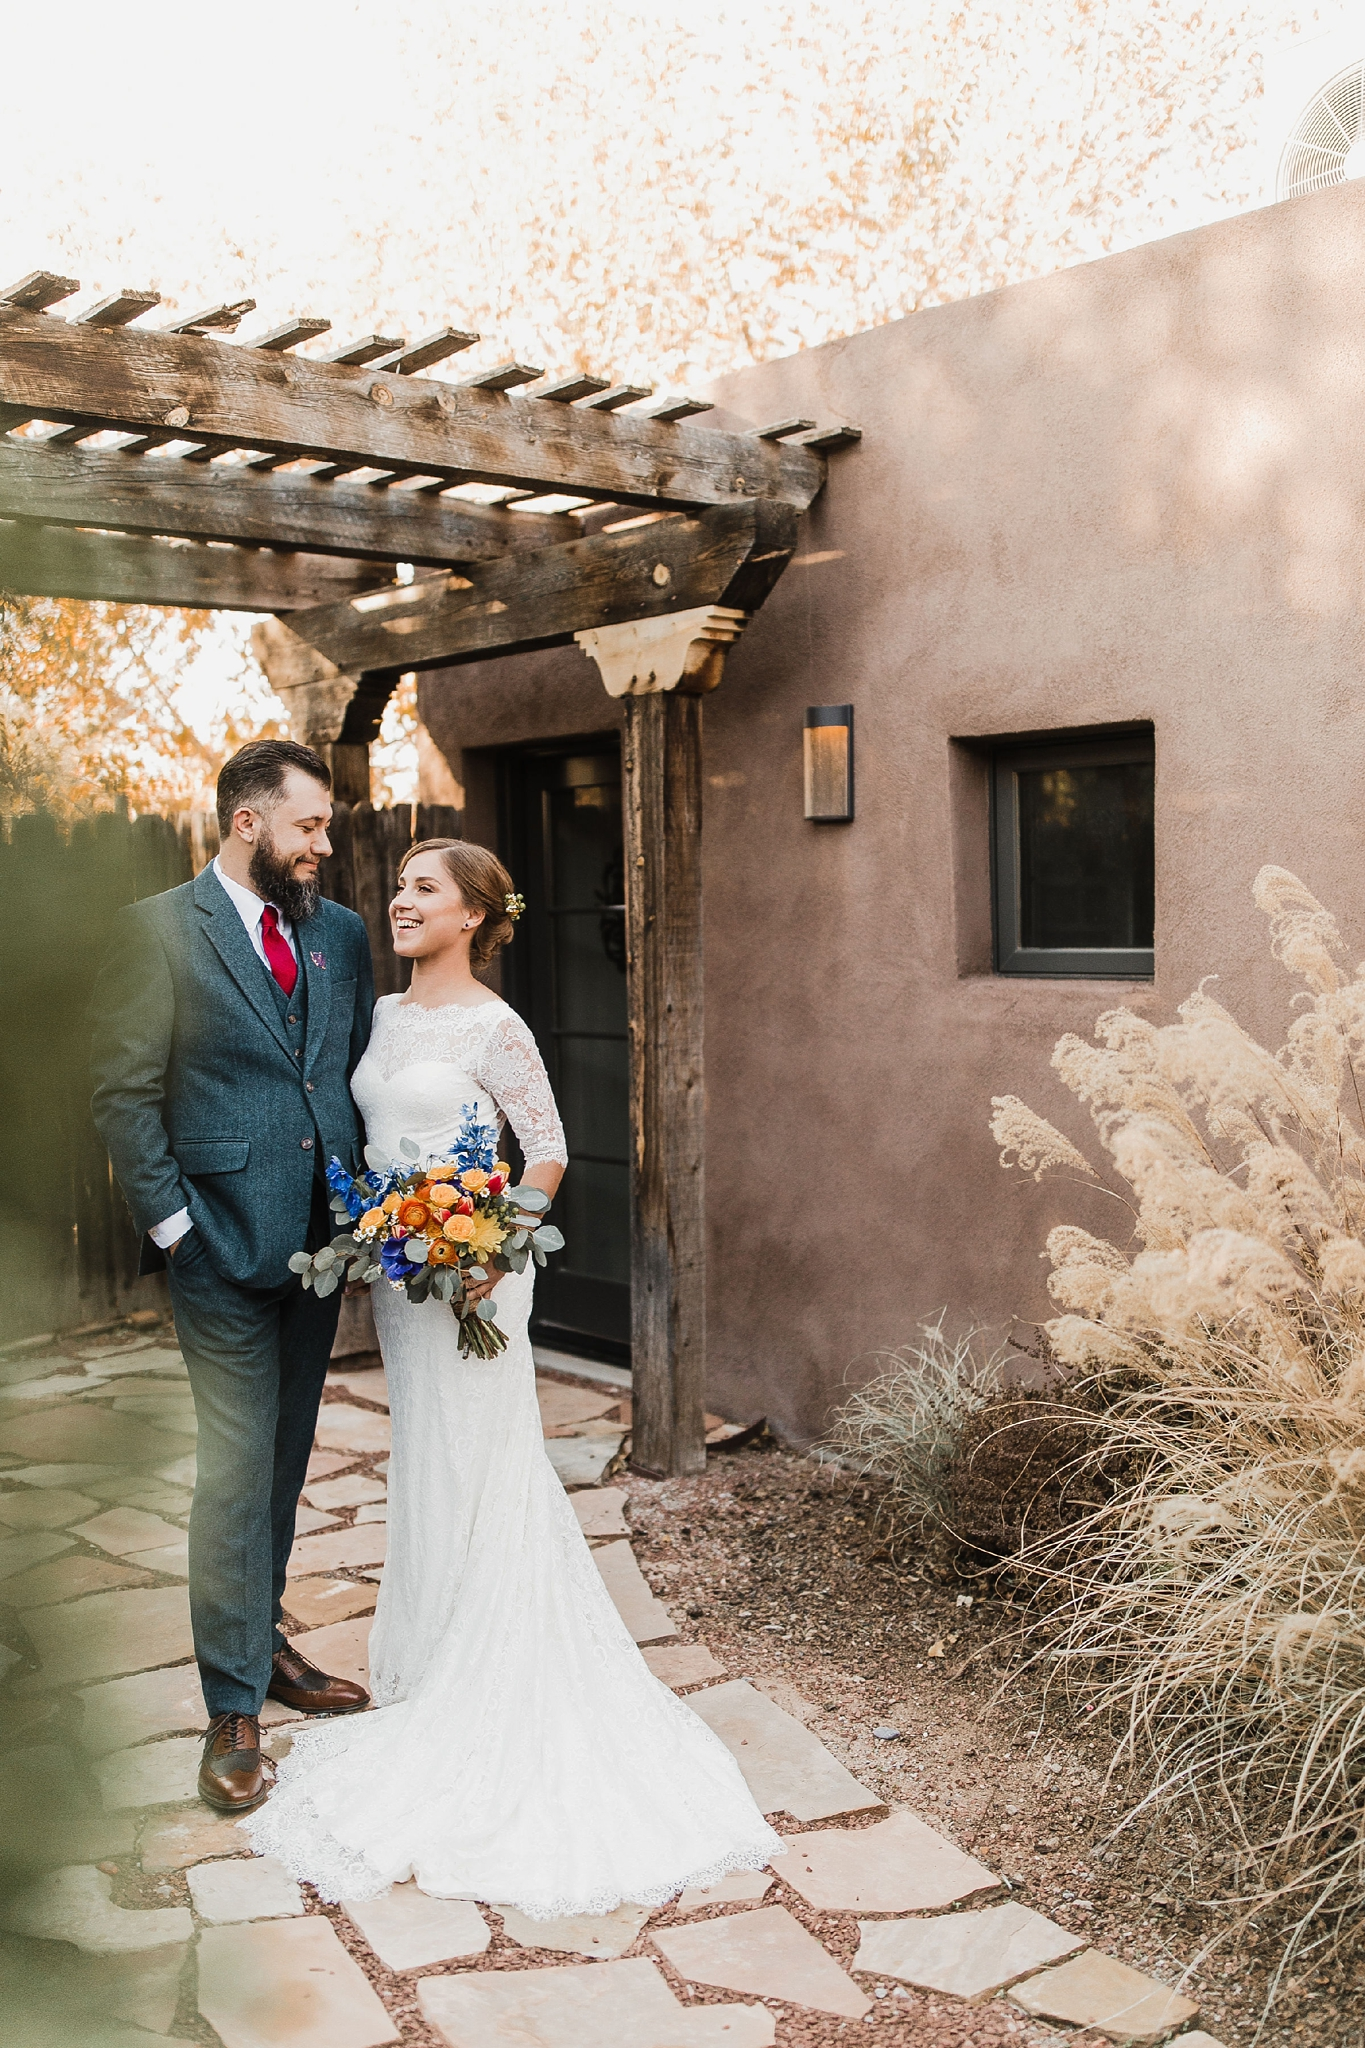 Alicia+lucia+photography+-+albuquerque+wedding+photographer+-+santa+fe+wedding+photography+-+new+mexico+wedding+photographer+-+albuquerque+wedding+-+sarabande+bed+breakfast+-+bed+and+breakfast+wedding_0027.jpg